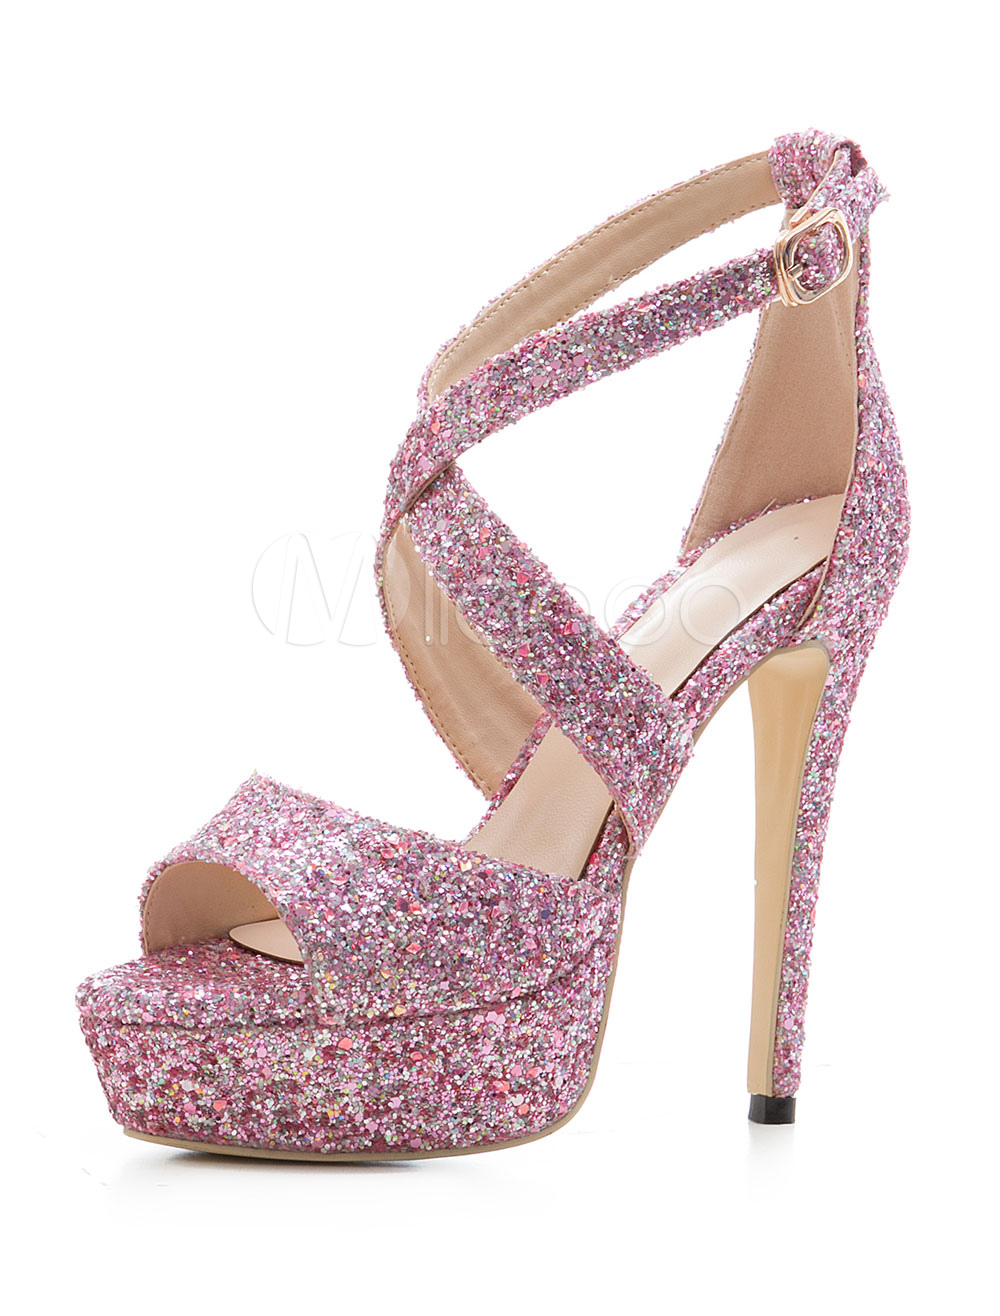 3235042d03e Women Evening Sandals Glitter Prom Shoes Fuchsia Pink Open Toe High Heel  Sandals